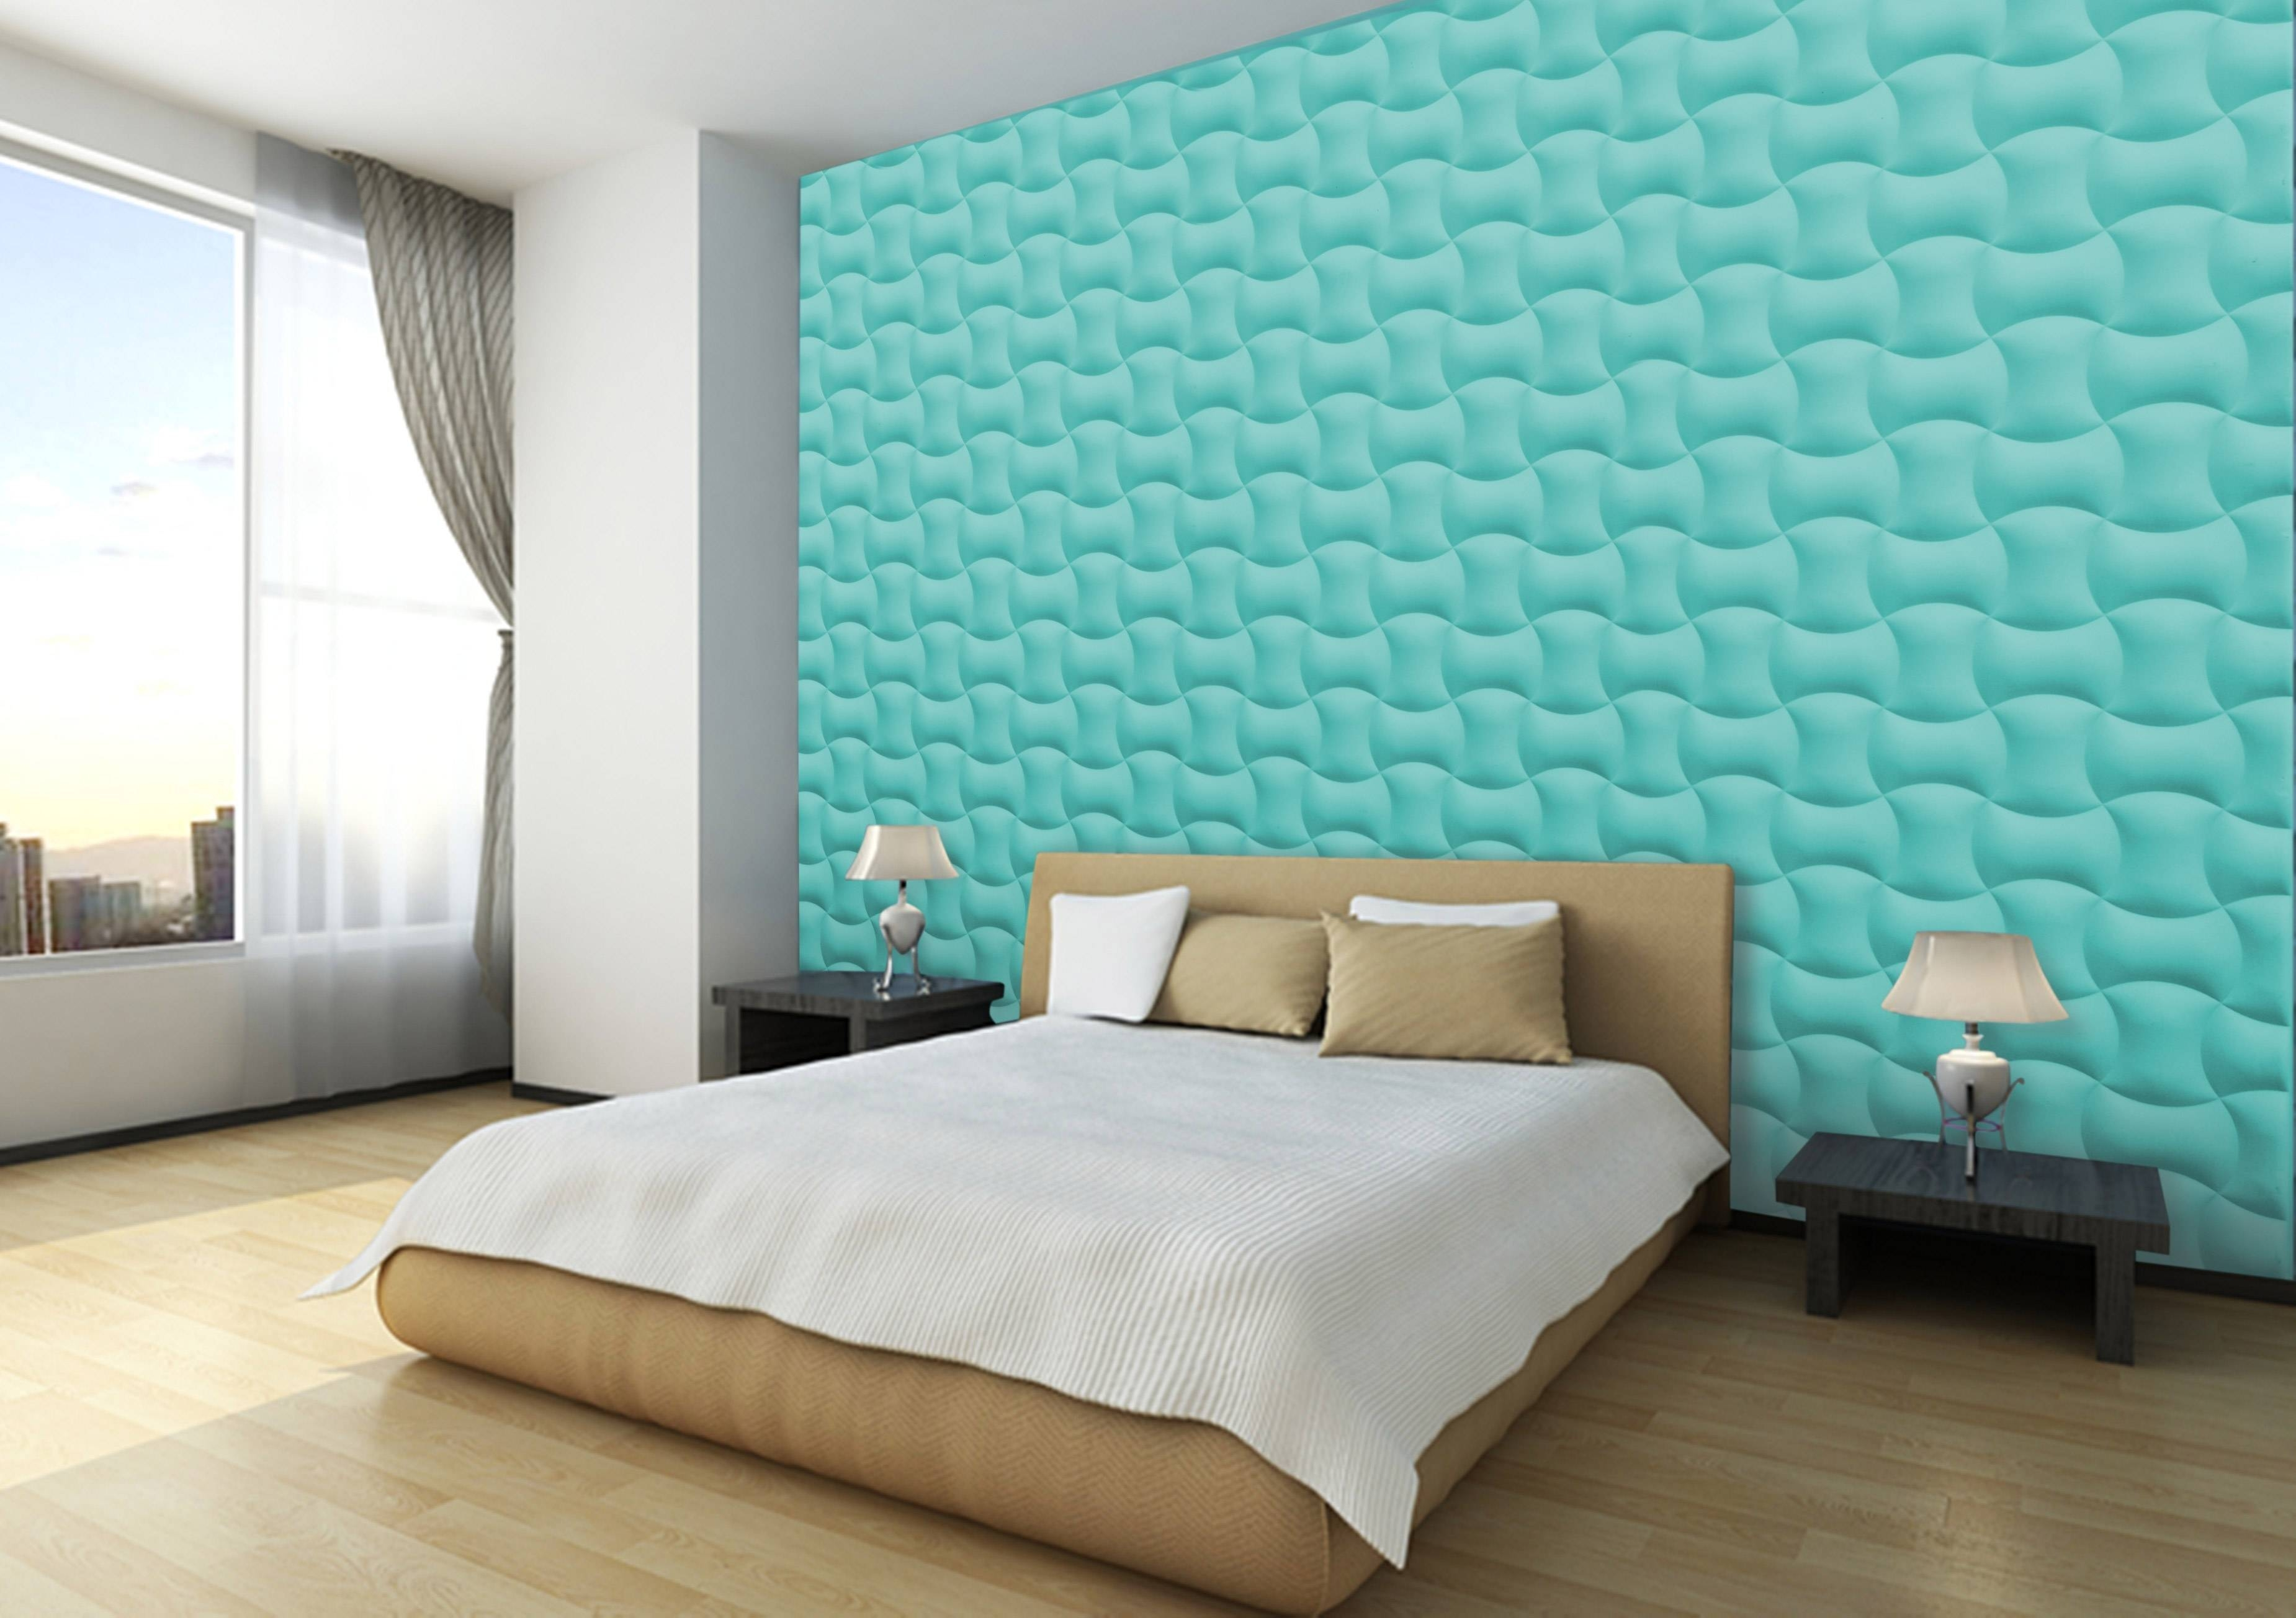 Easy Assemble 3D Wall Panels — The Home Redesign Within 2018 3D Plastic Wall Panels (View 12 of 20)